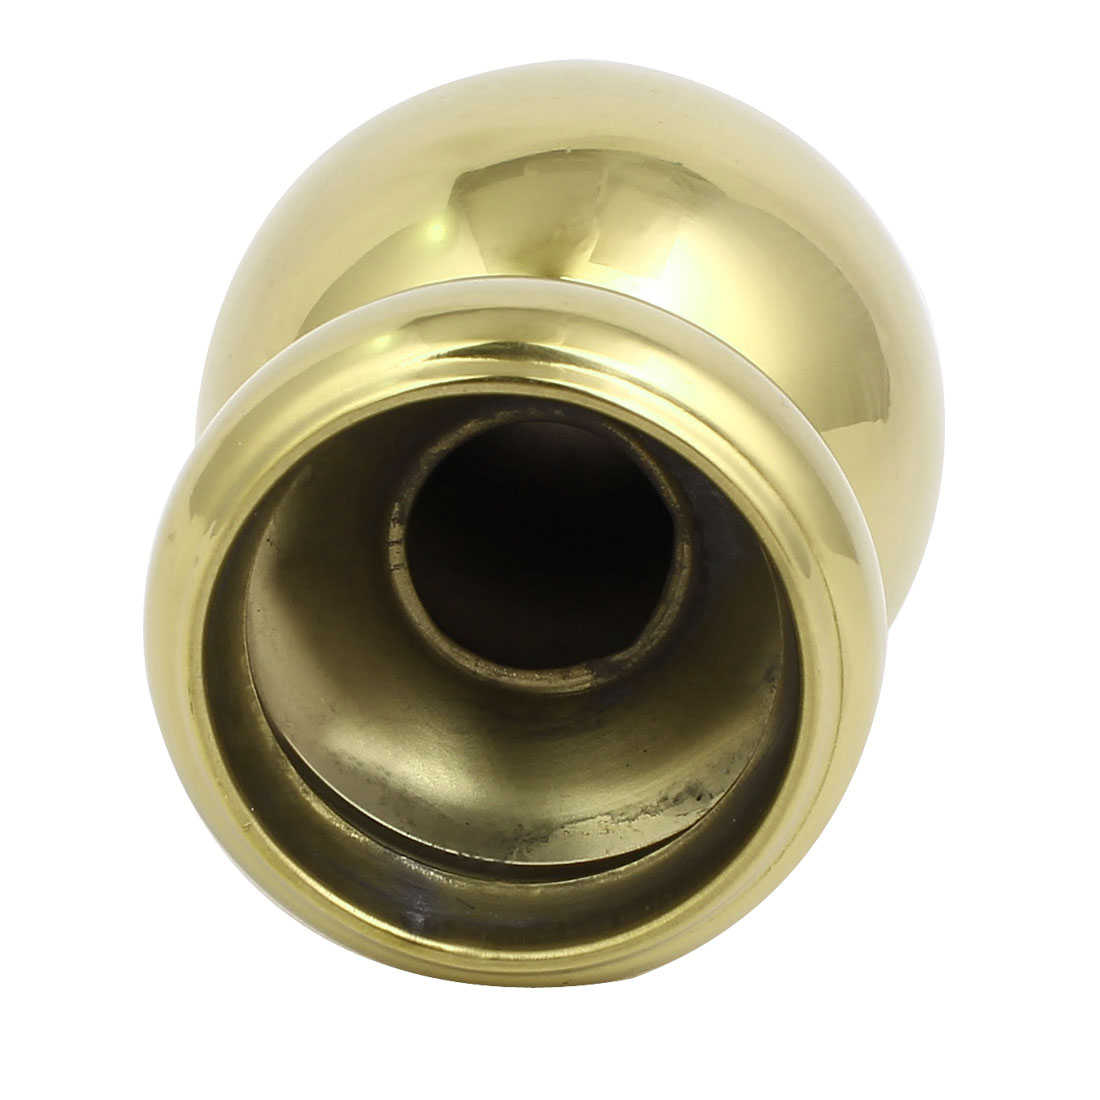 51mm Ball Top Cap 304 Stainless Steel Gold Tone for Stair Newel Fence Post